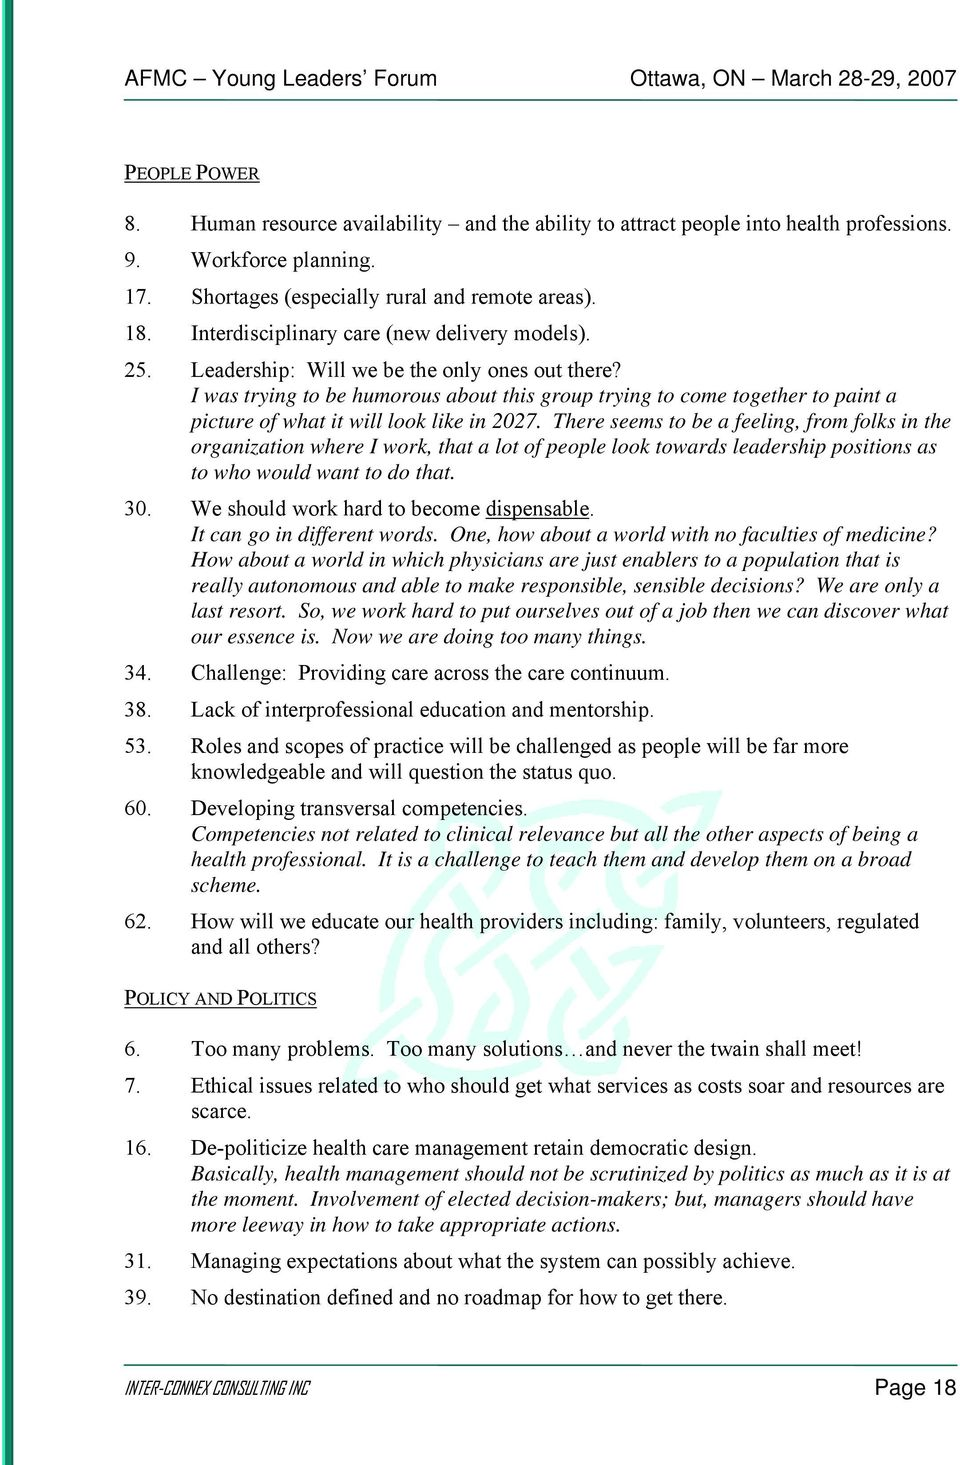 I was trying to be humorous about this group trying to come together to paint a picture of what it will look like in 2027.